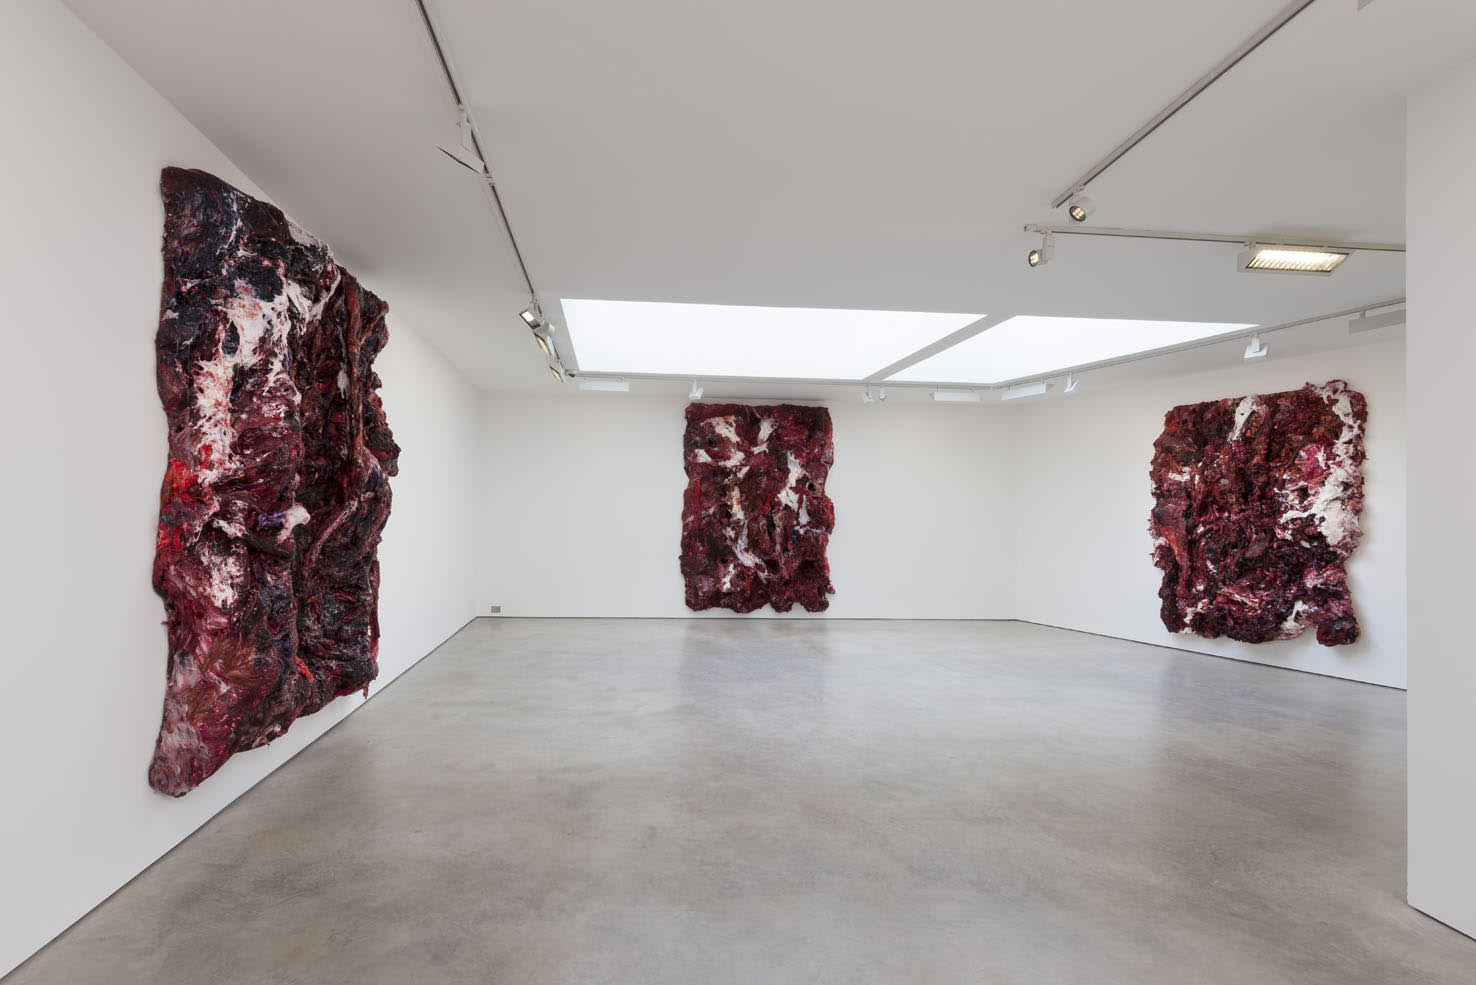 Anish Kapoor <em>Internal Objects in Three Parts</em>, 2013-2015. Silicone and pigment 3 parts: 338 x 260 x 48 cm 316 x 260 x 48 cm 293 x 218 x 40 cm © the artist; Courtesy, Lisson Gallery, London (image ref #: KAPO150002)